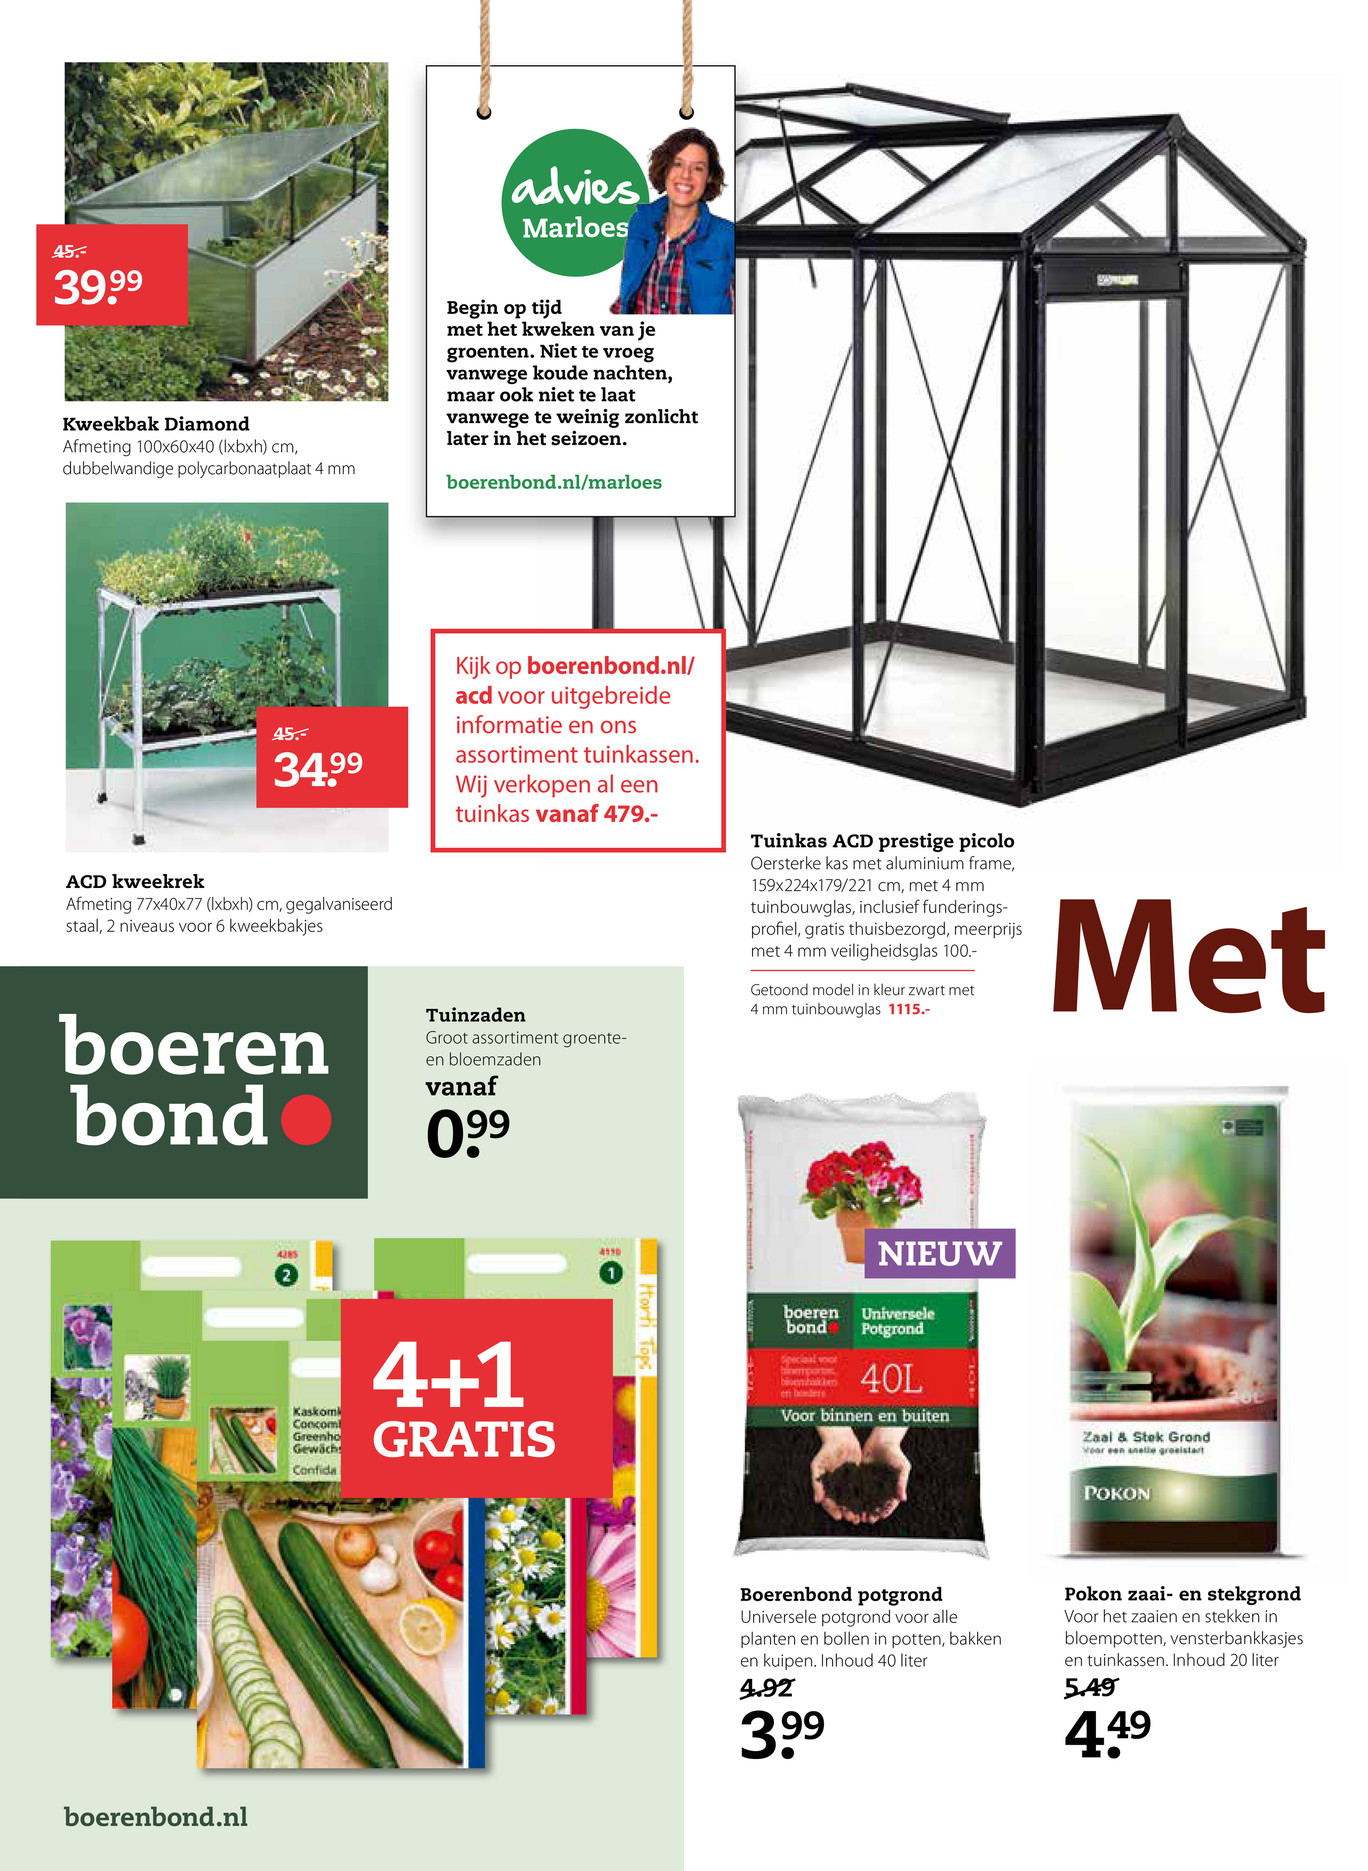 Petsplace - Boerenbond Folder week 4 - 5 2015 - Pagina 2-3